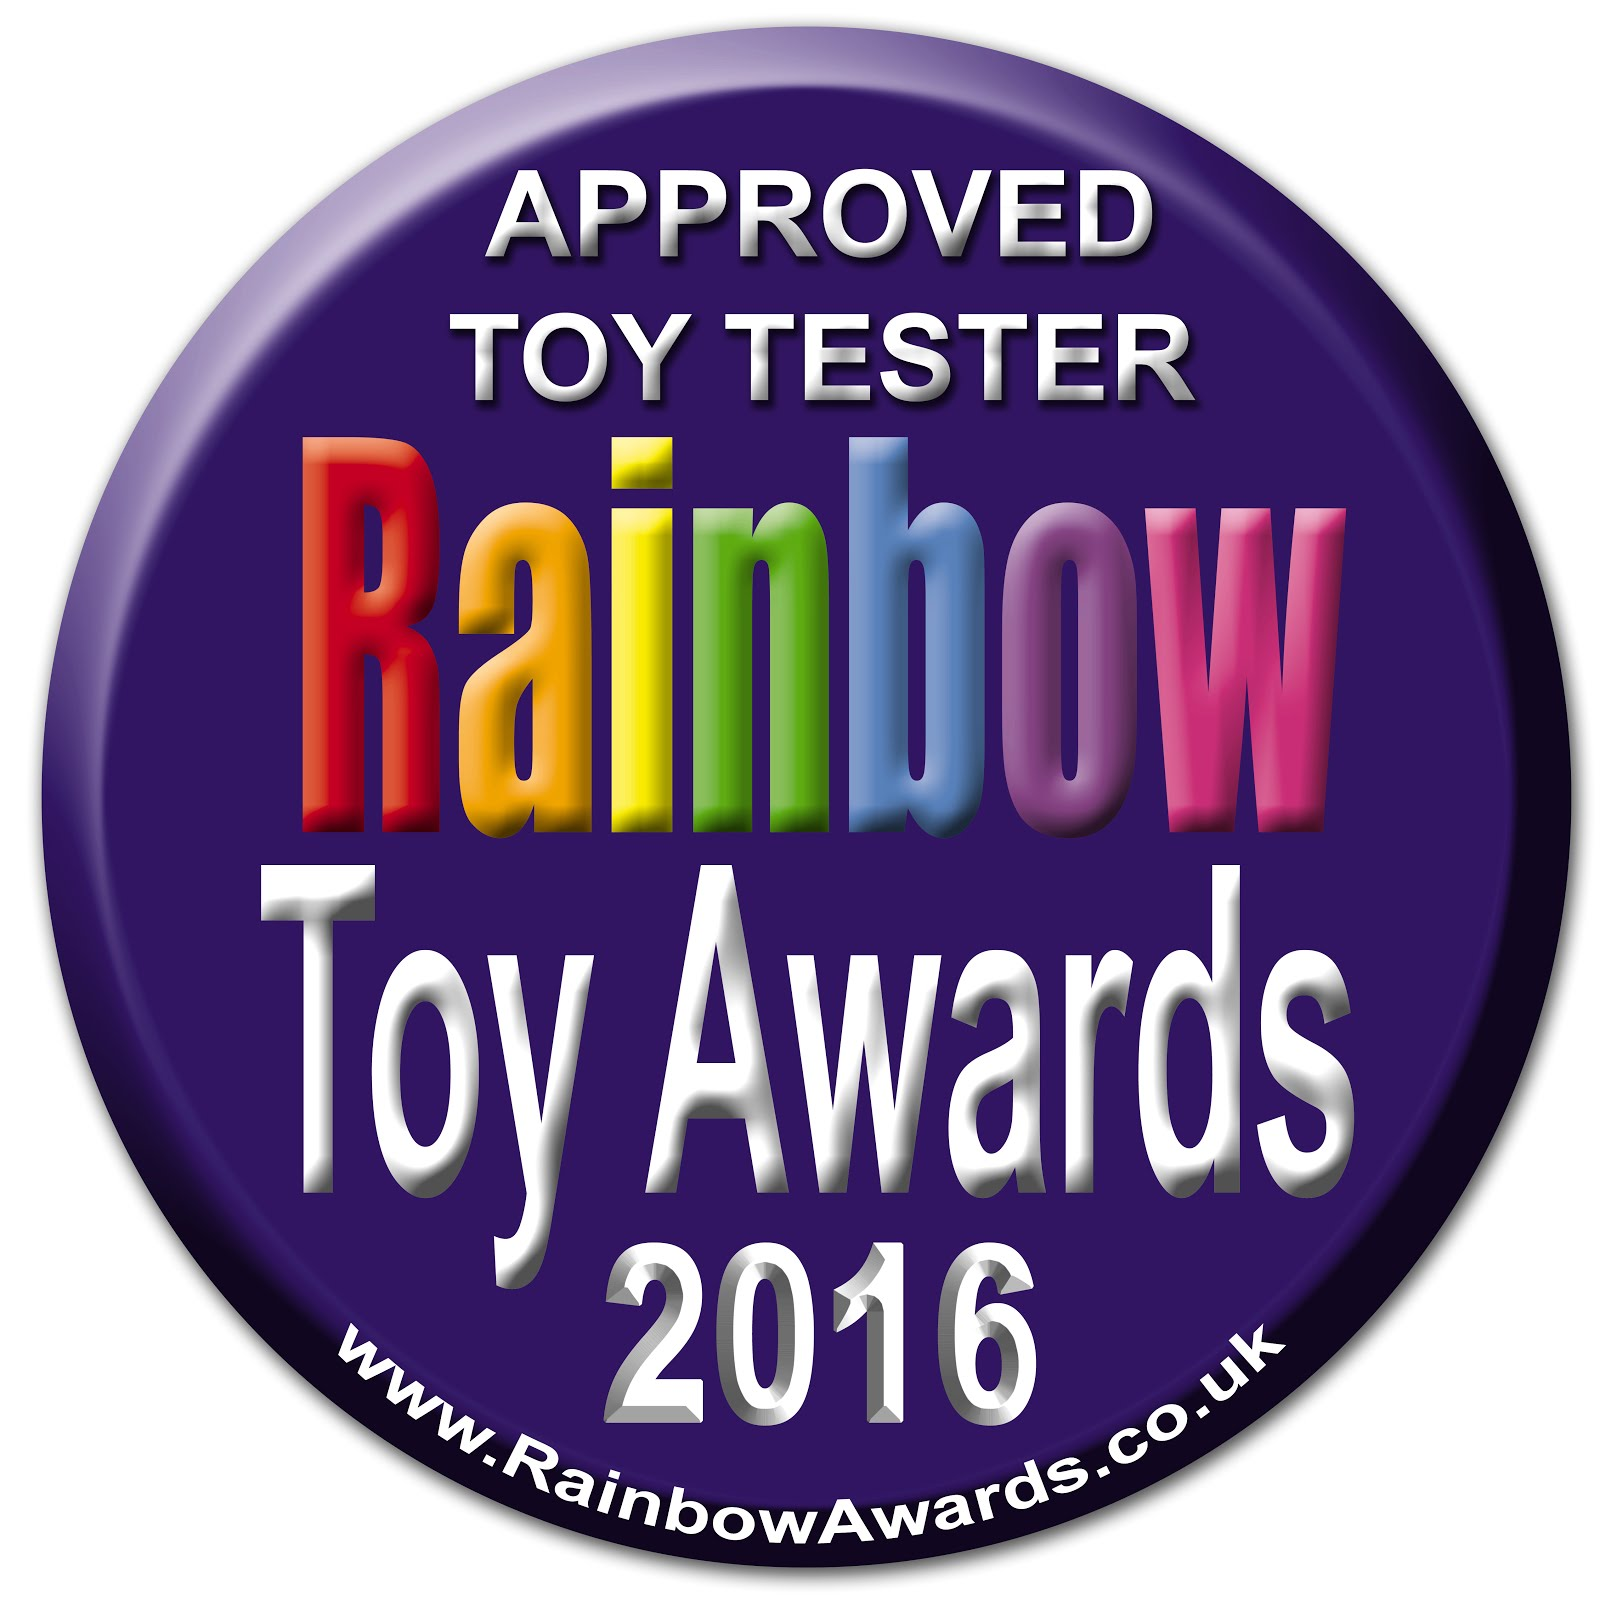 Rainbow Toy Awards 2016